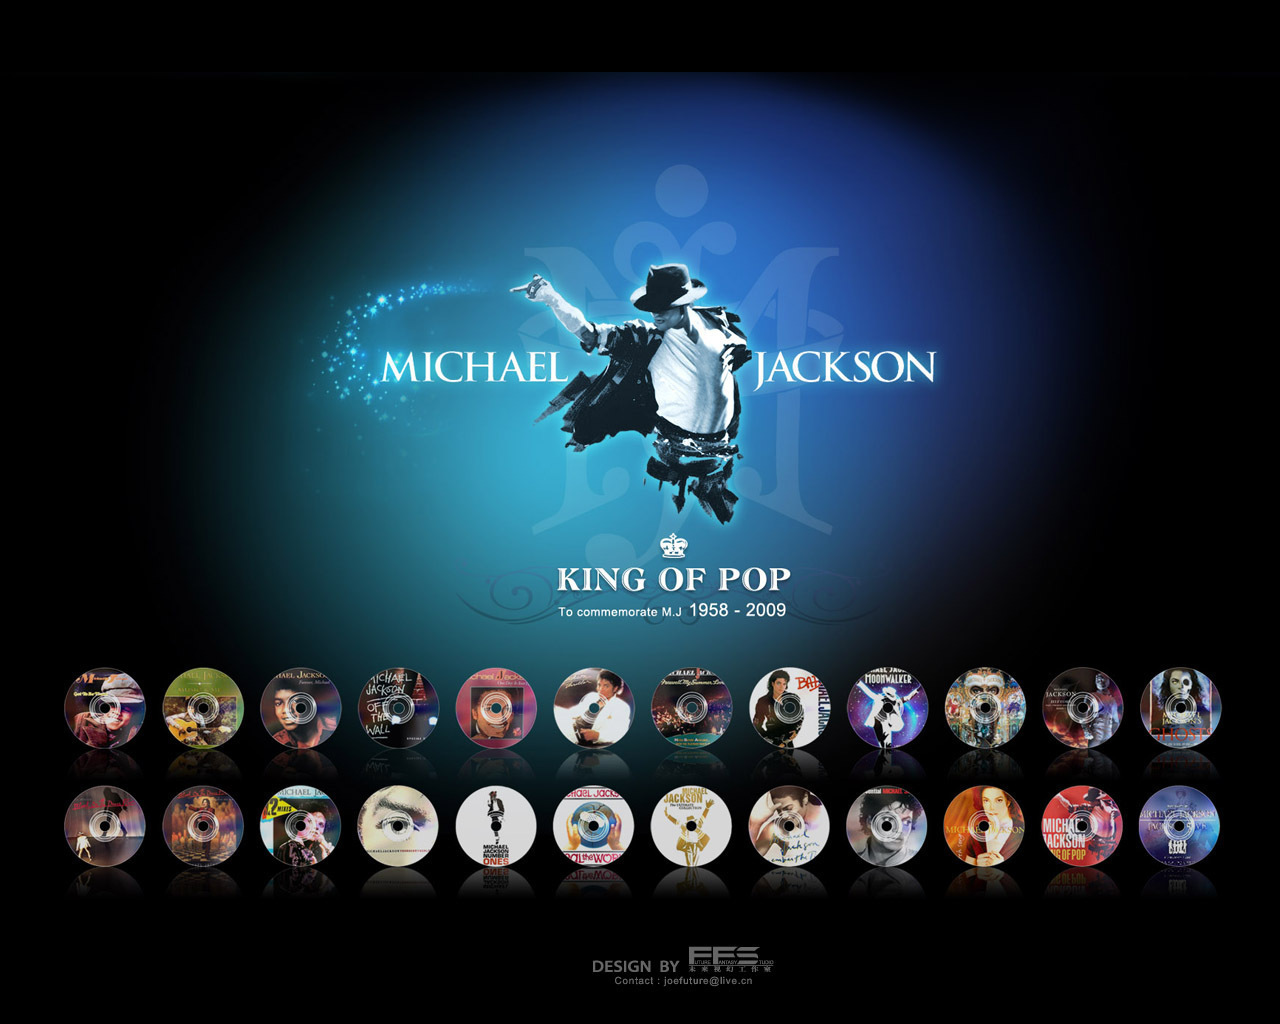 Wallpaper Love You Forever : MJJ /niks95 wallpaper